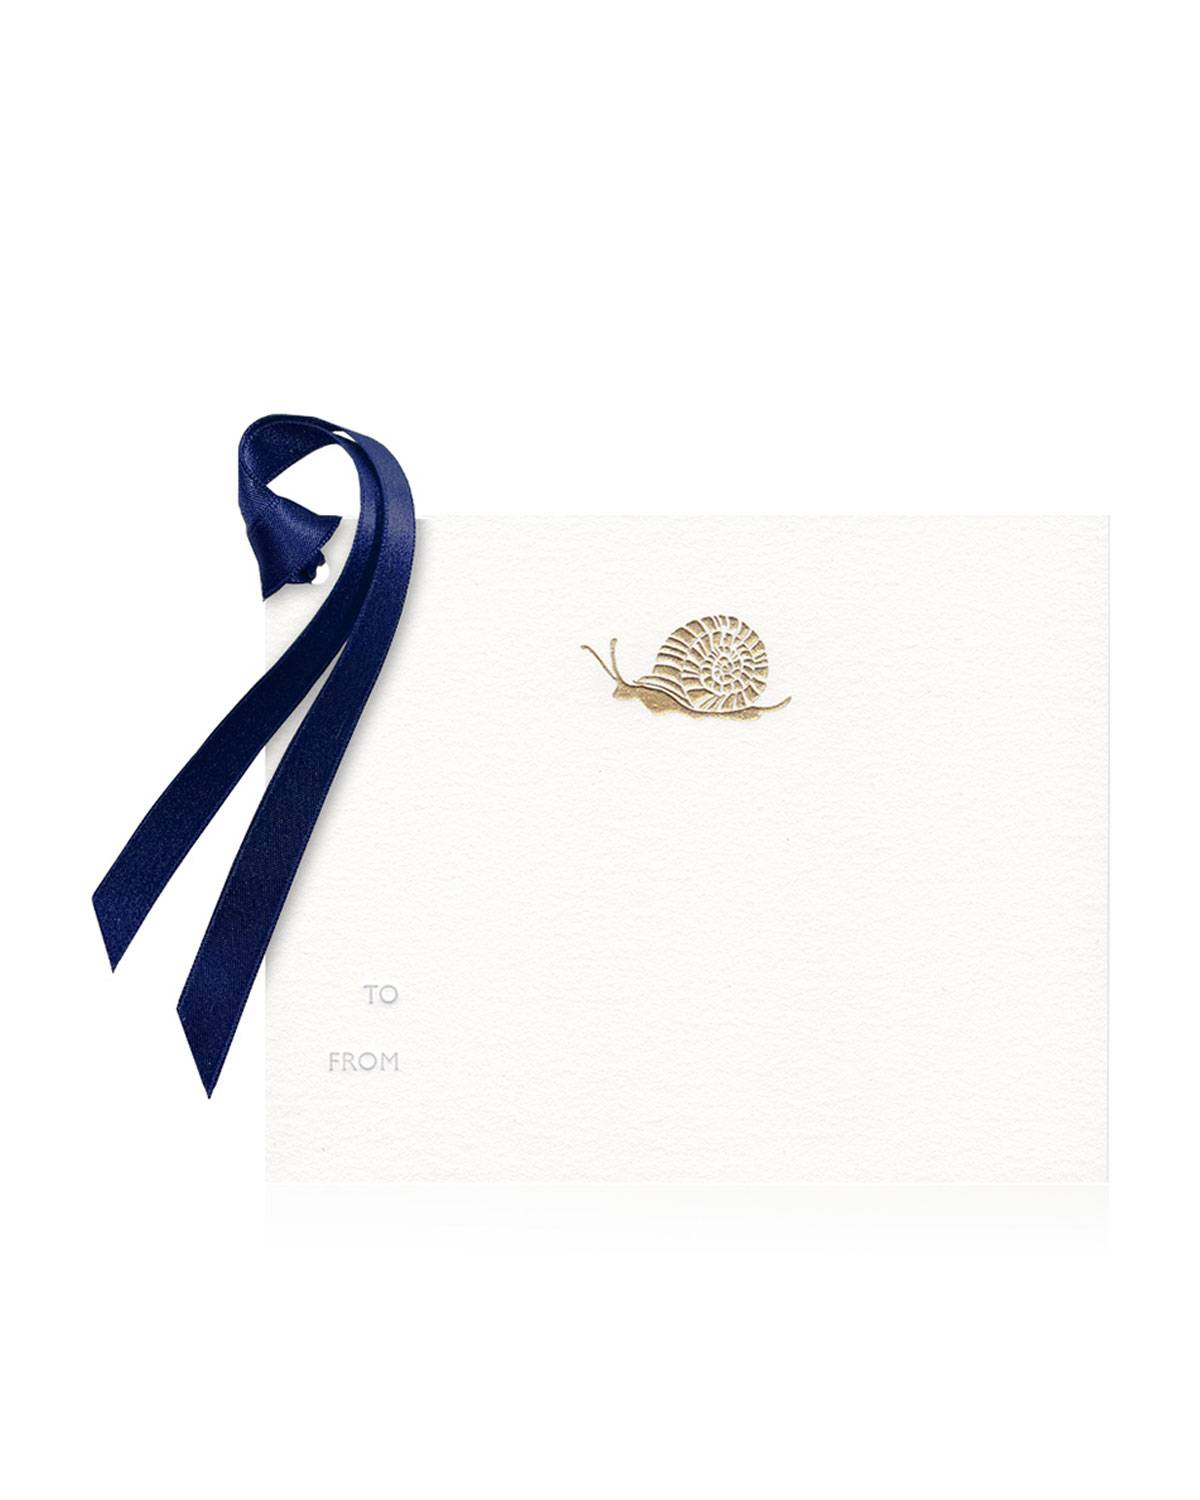 Bell'INVITO Garden Snail Gift Tags - Set of 8